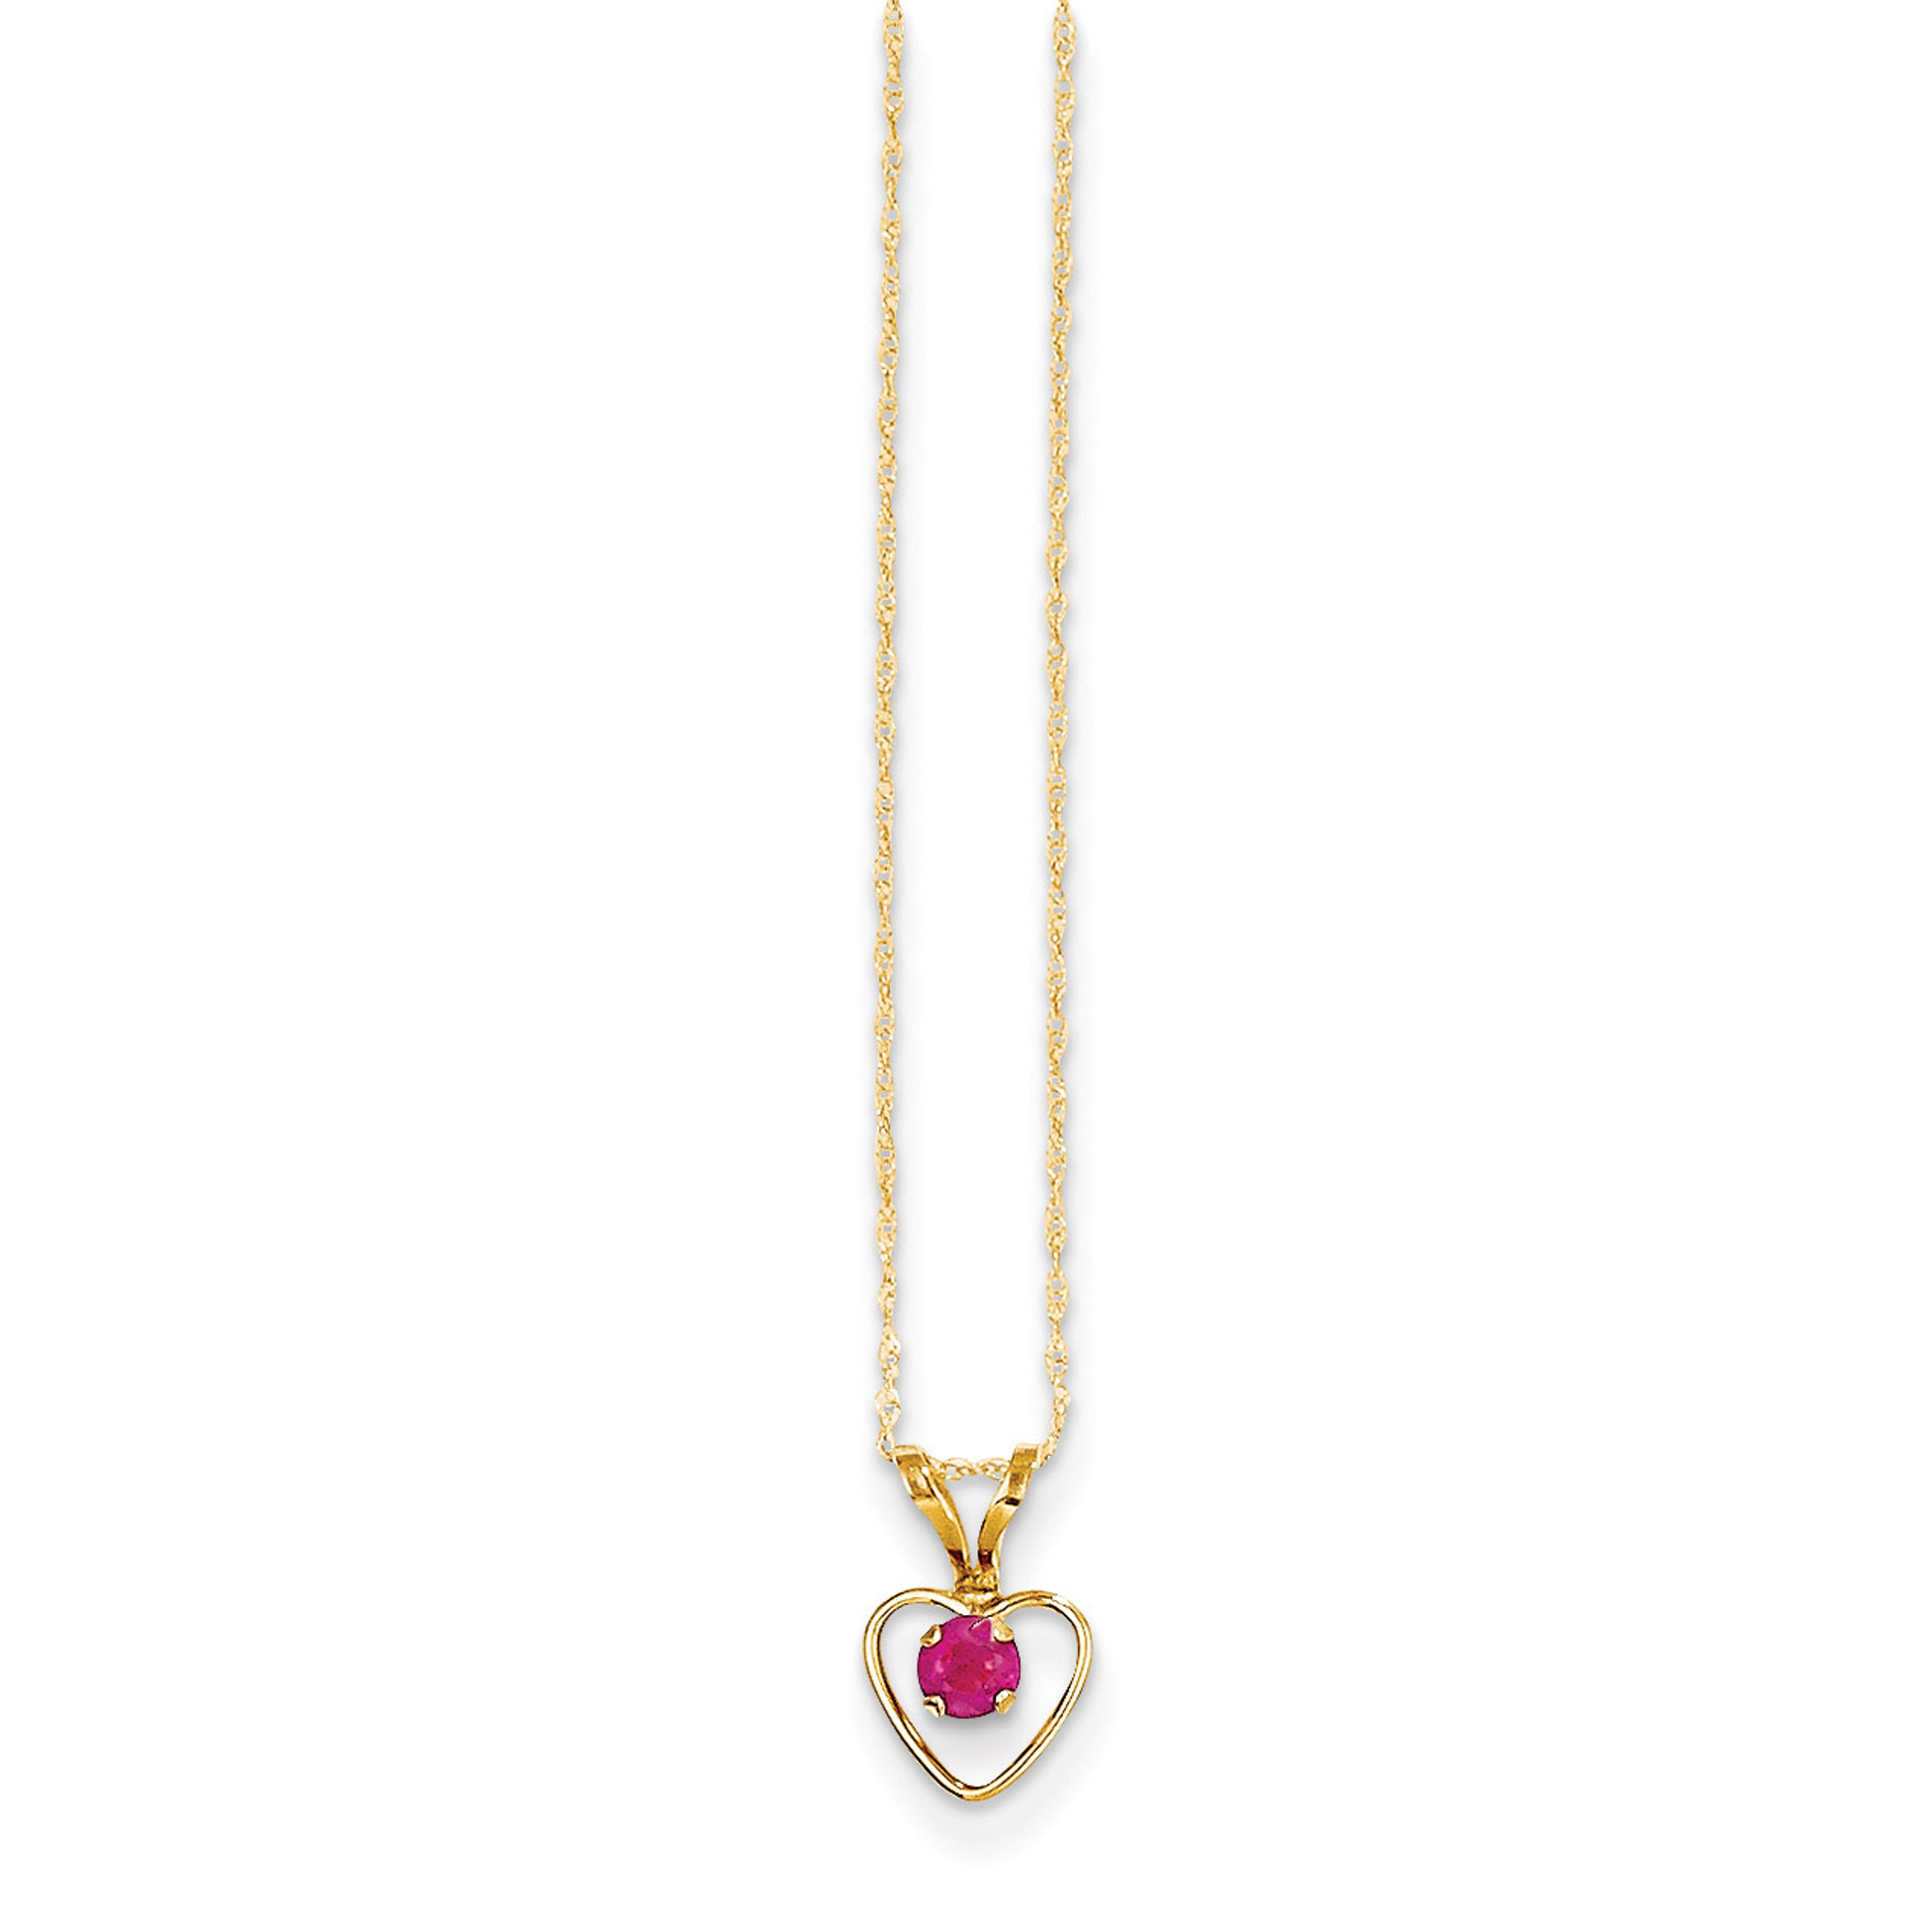 Jewelry Necklaces Necklace with Pendants 14k Madi K 3mm Blue Zircon Heart Birthstone Necklace